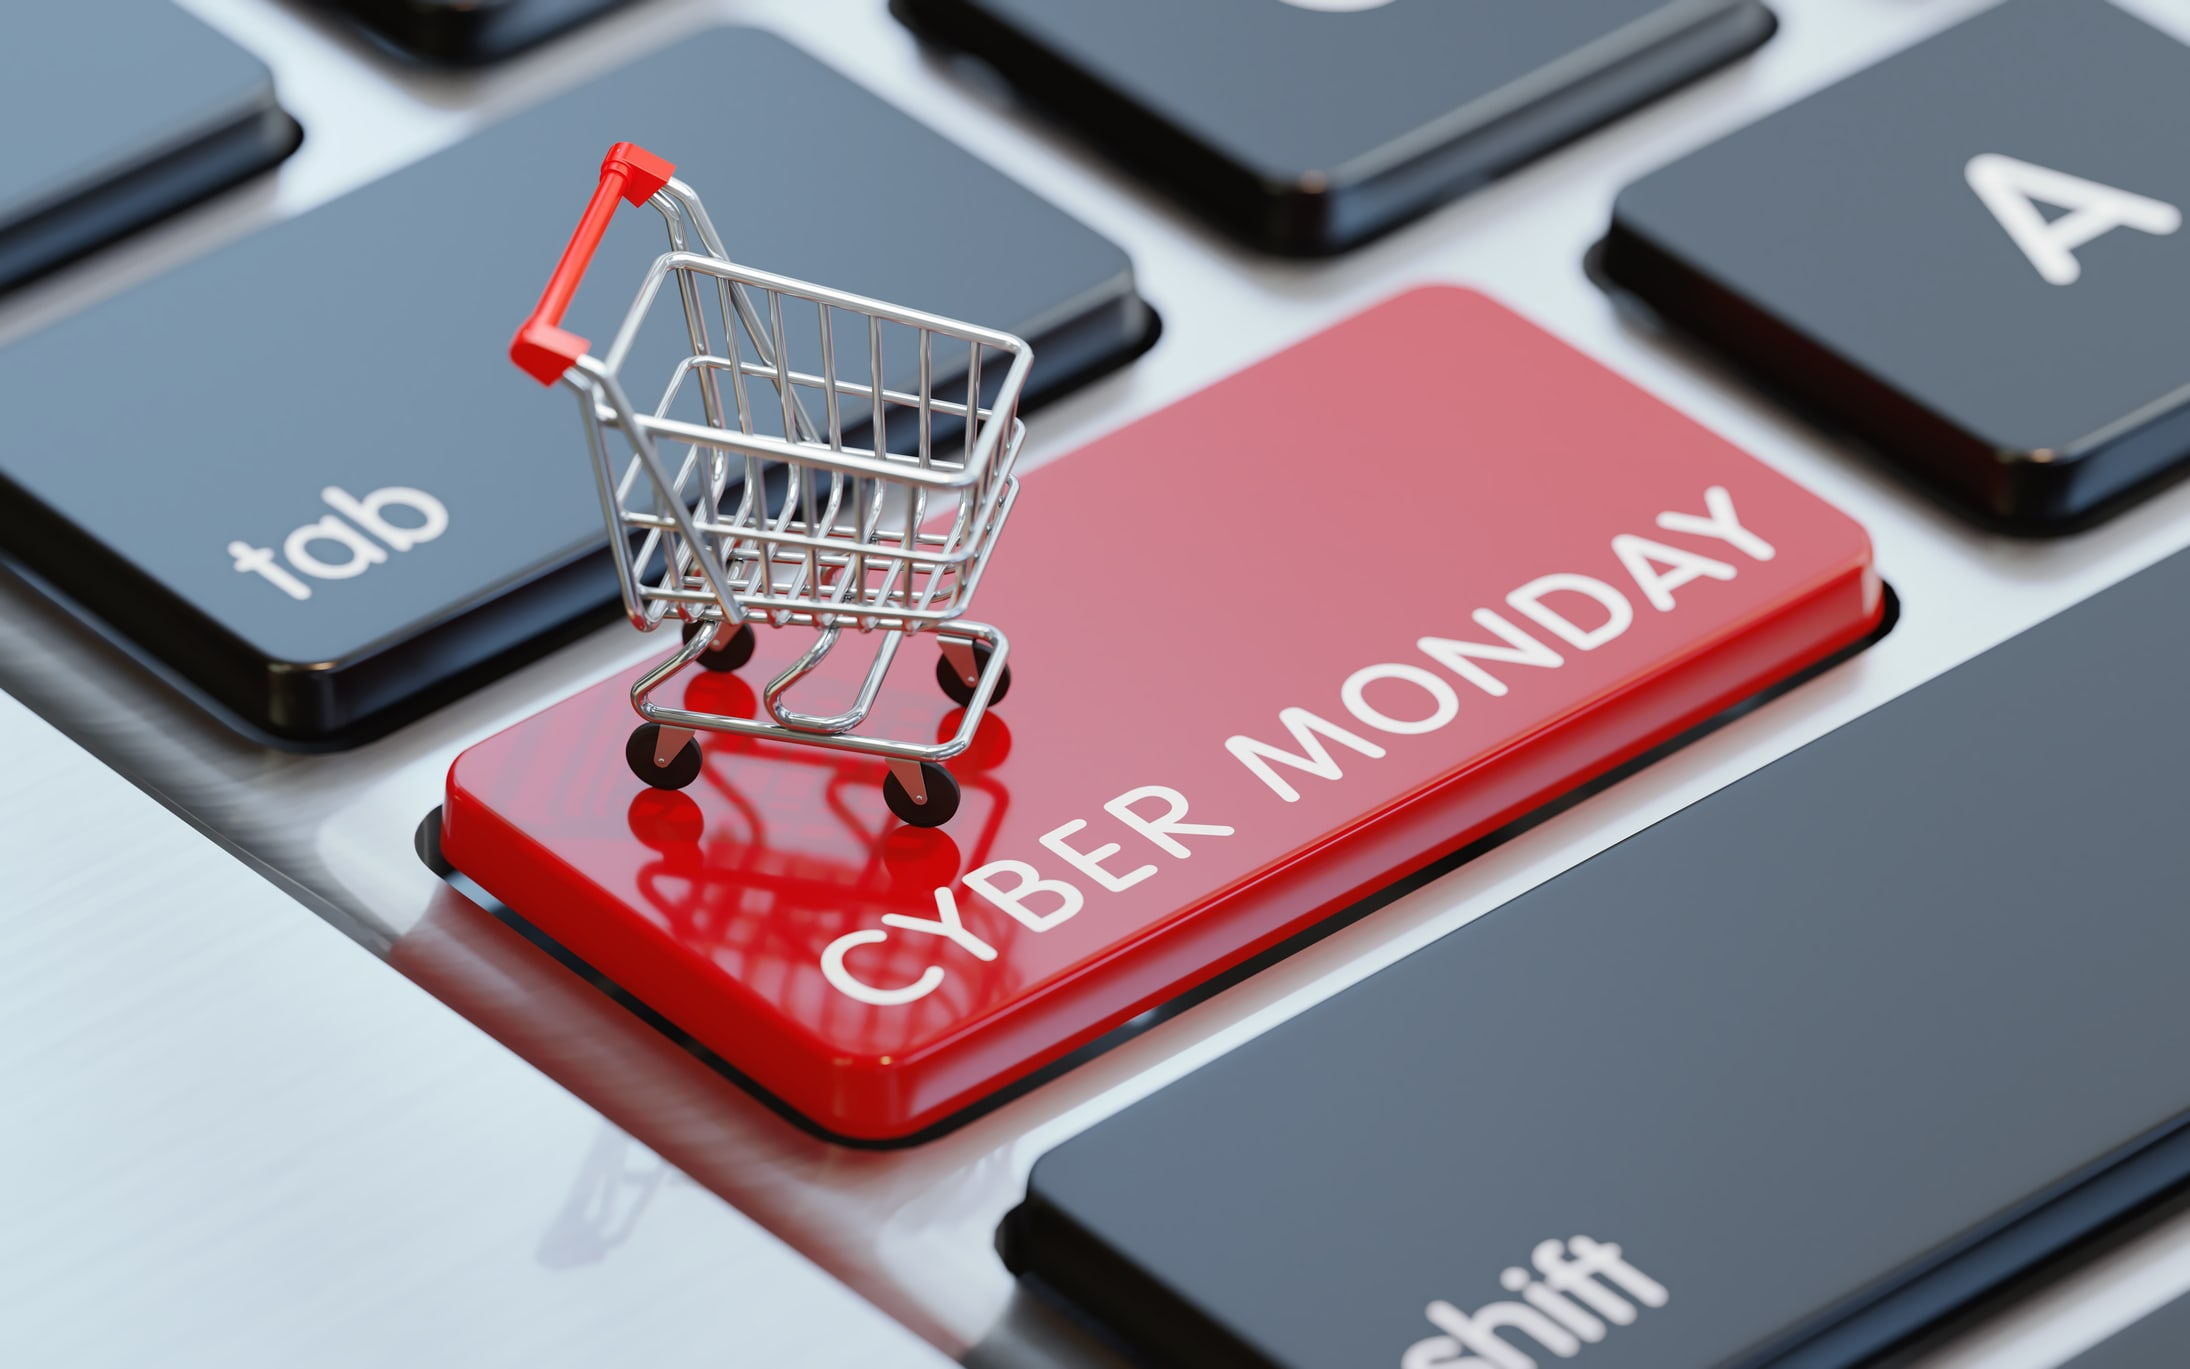 e2398d47b1 7 Ways Cyber Monday Is Different From Black Friday